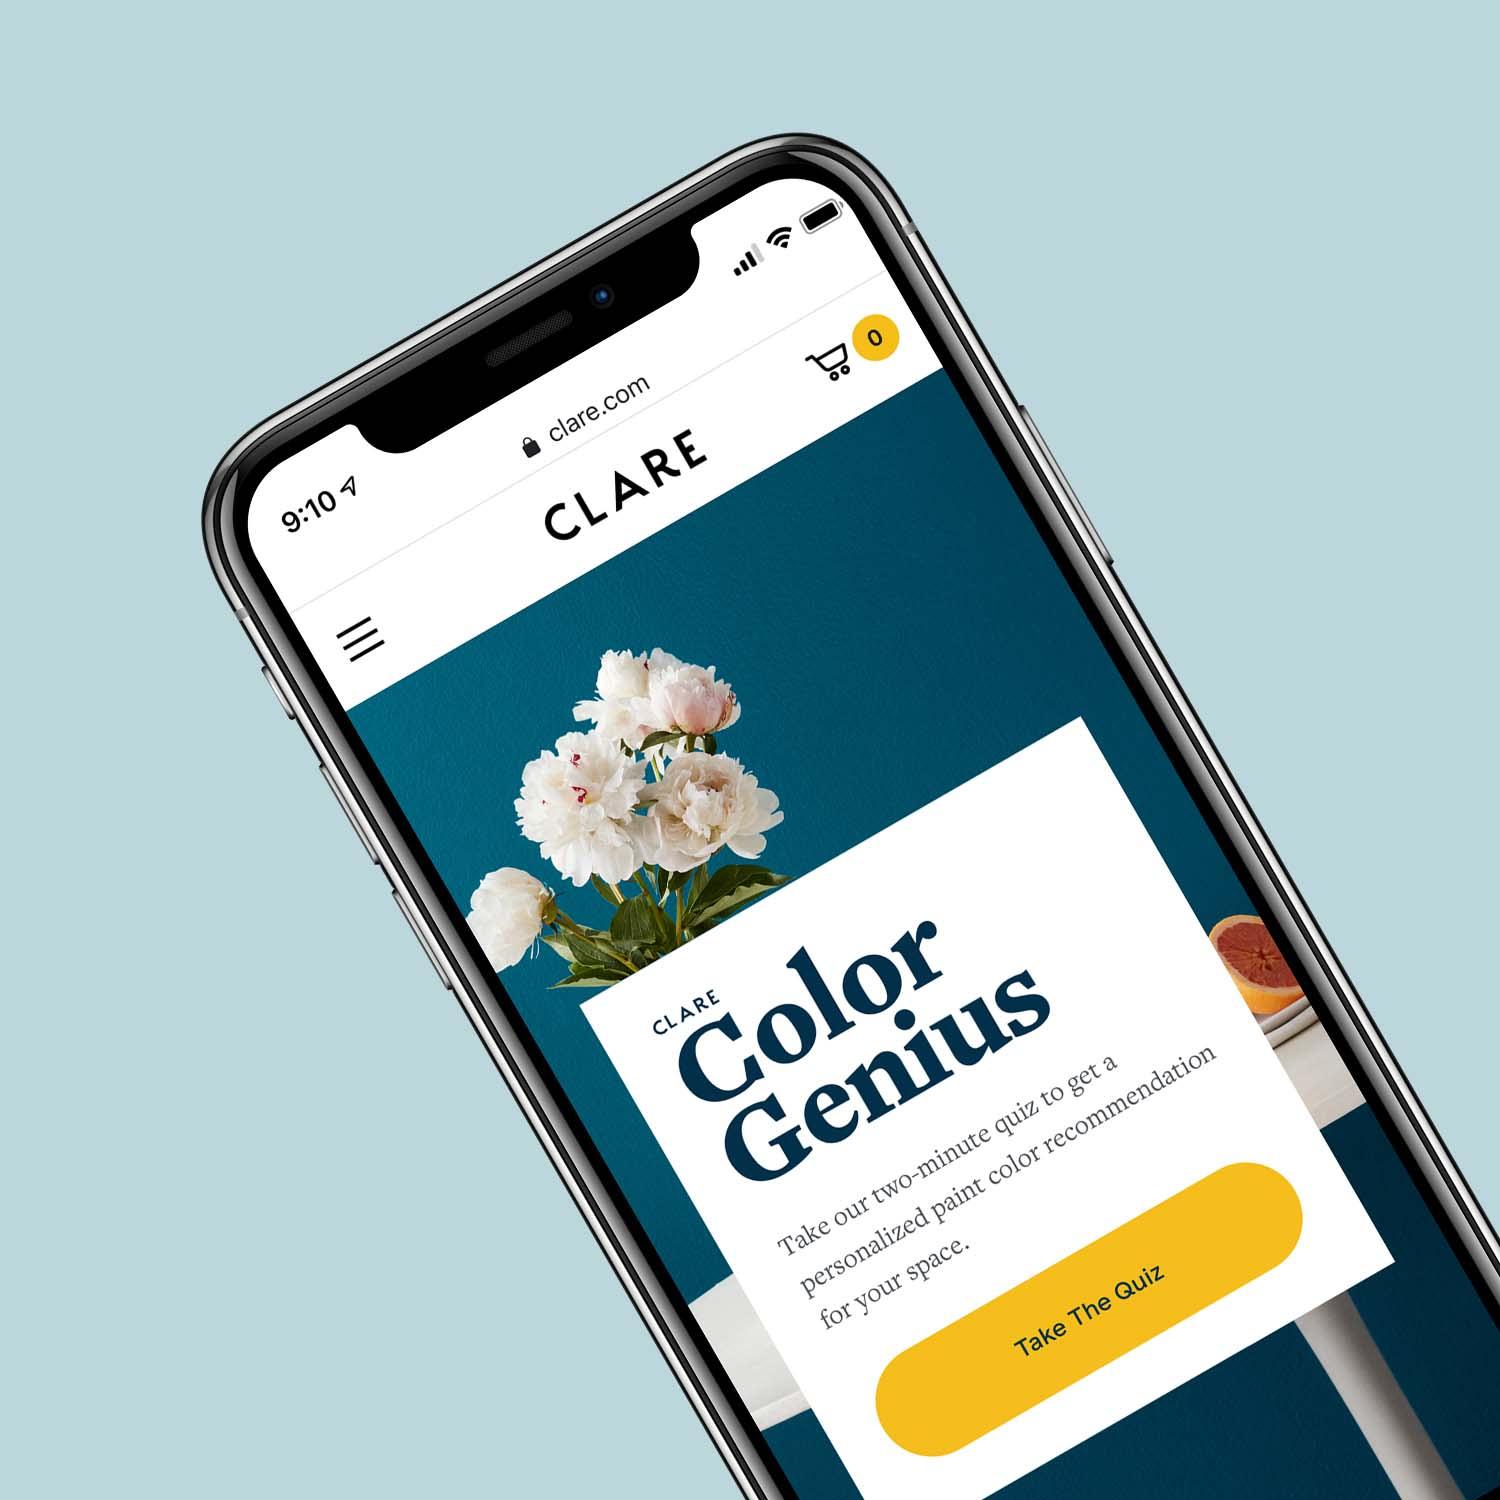 To help you choose a paint color online, we created Clare Color Genius to guide you. Just answer a few easy questions, and you'll get a personalized color recommendation for your space...it's like having an interior designer to help you choose the perfect color!